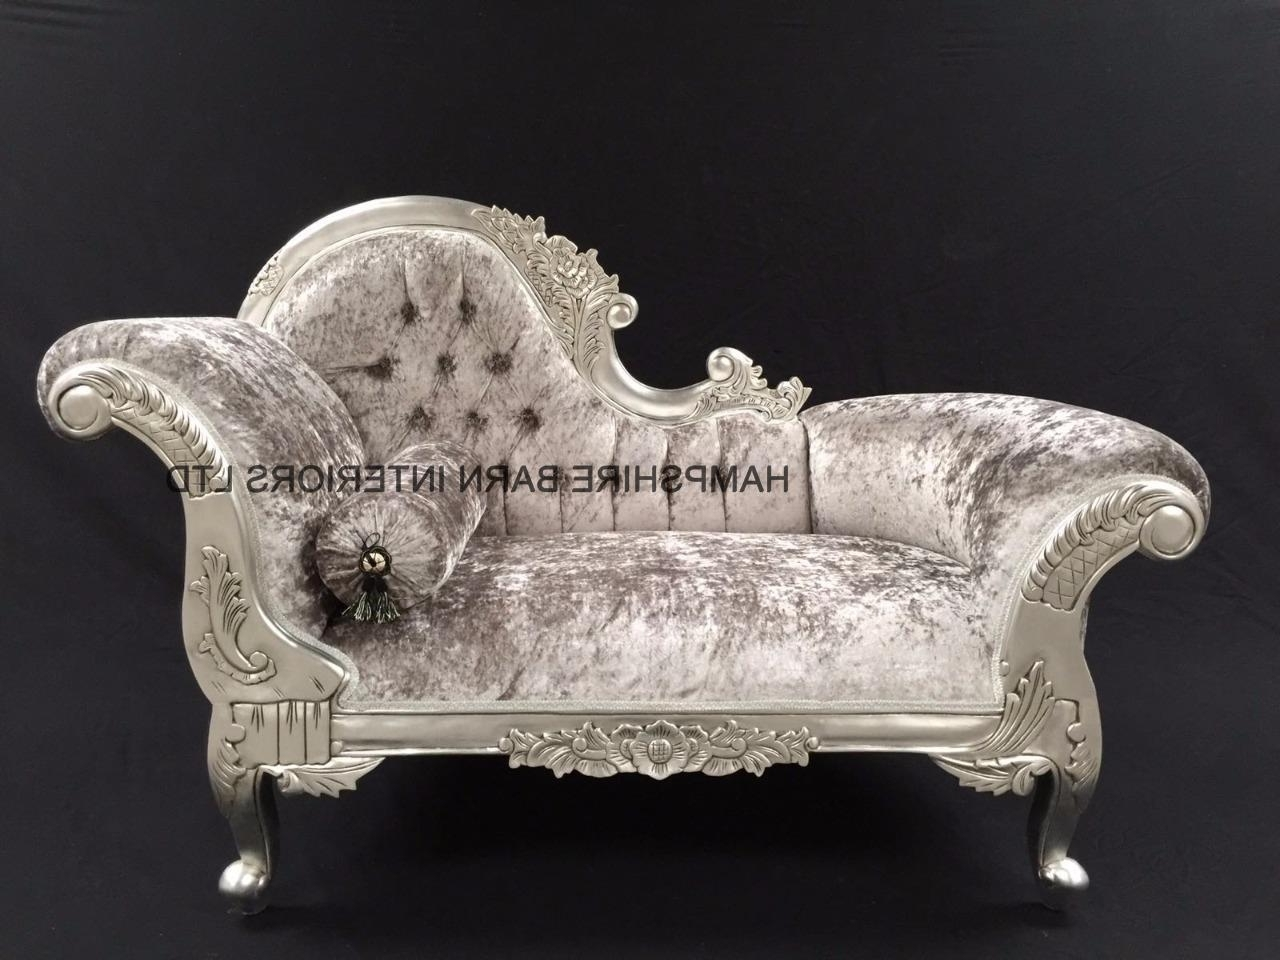 Widely Used Small Chaise Lounges In Elegant French Chaise Lounge With Chaise Lounge Small Kc Designs (View 15 of 15)